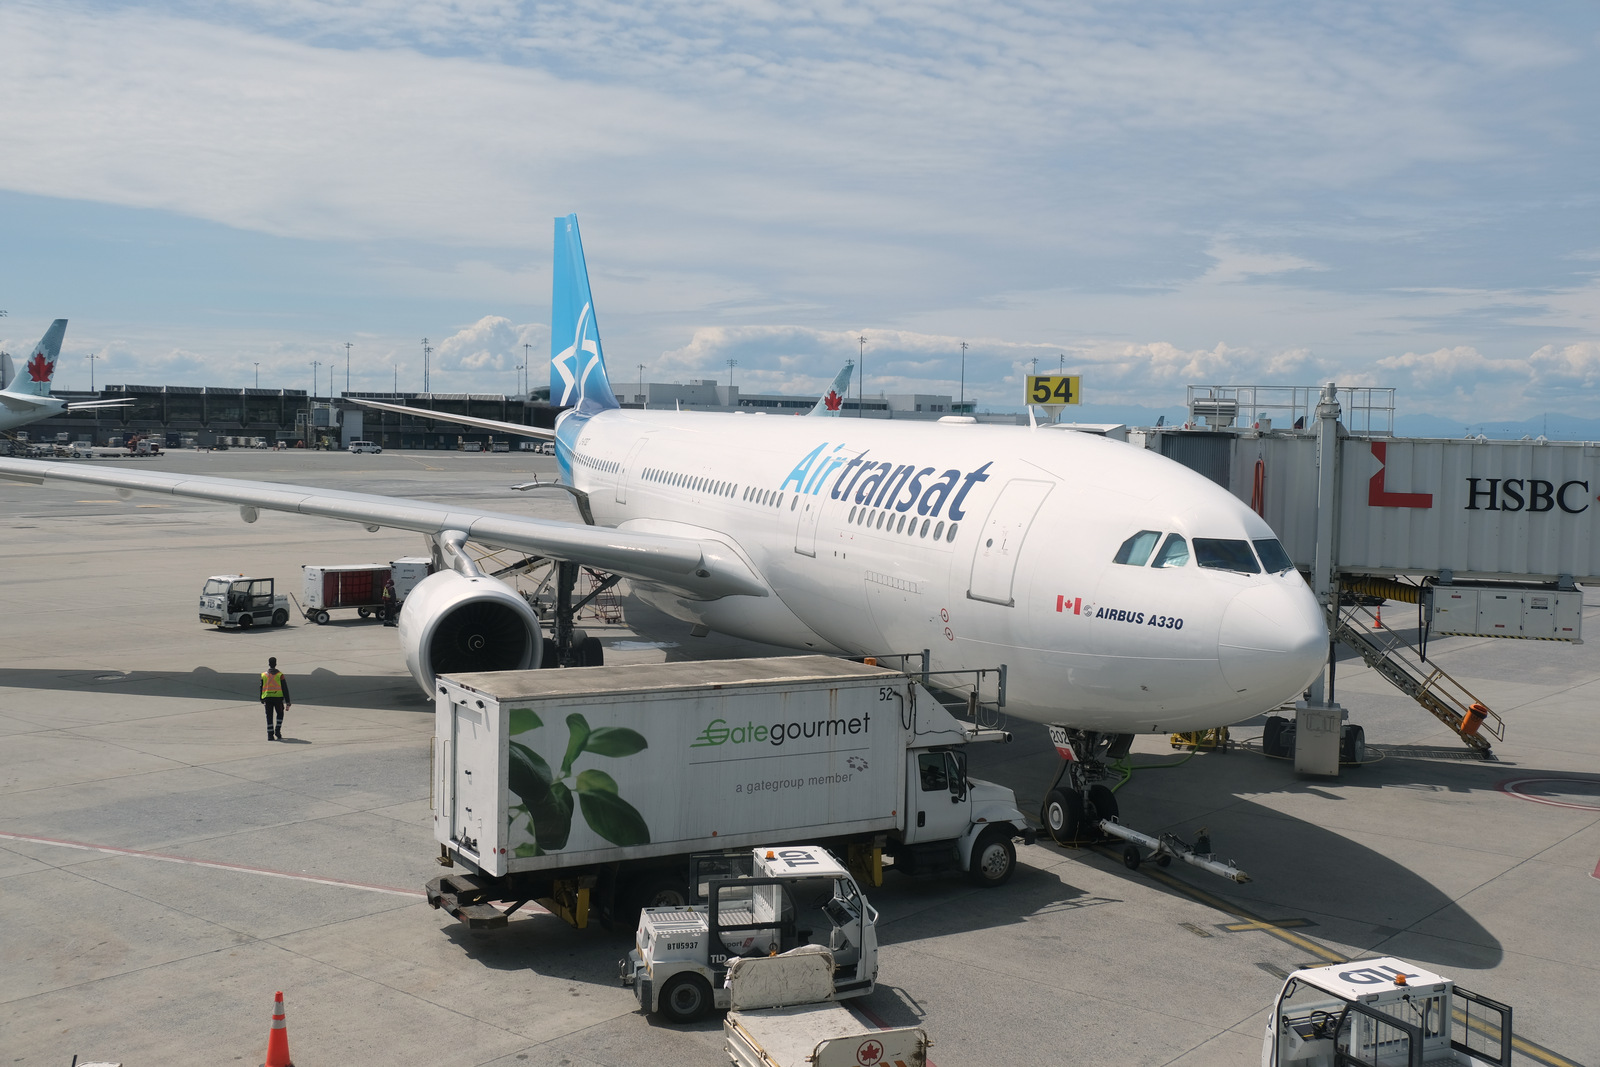 From its first flight in 1987, Air Transat has grown steadily. In 2018, it was named World's Best Leisure Airline by Skytrax.